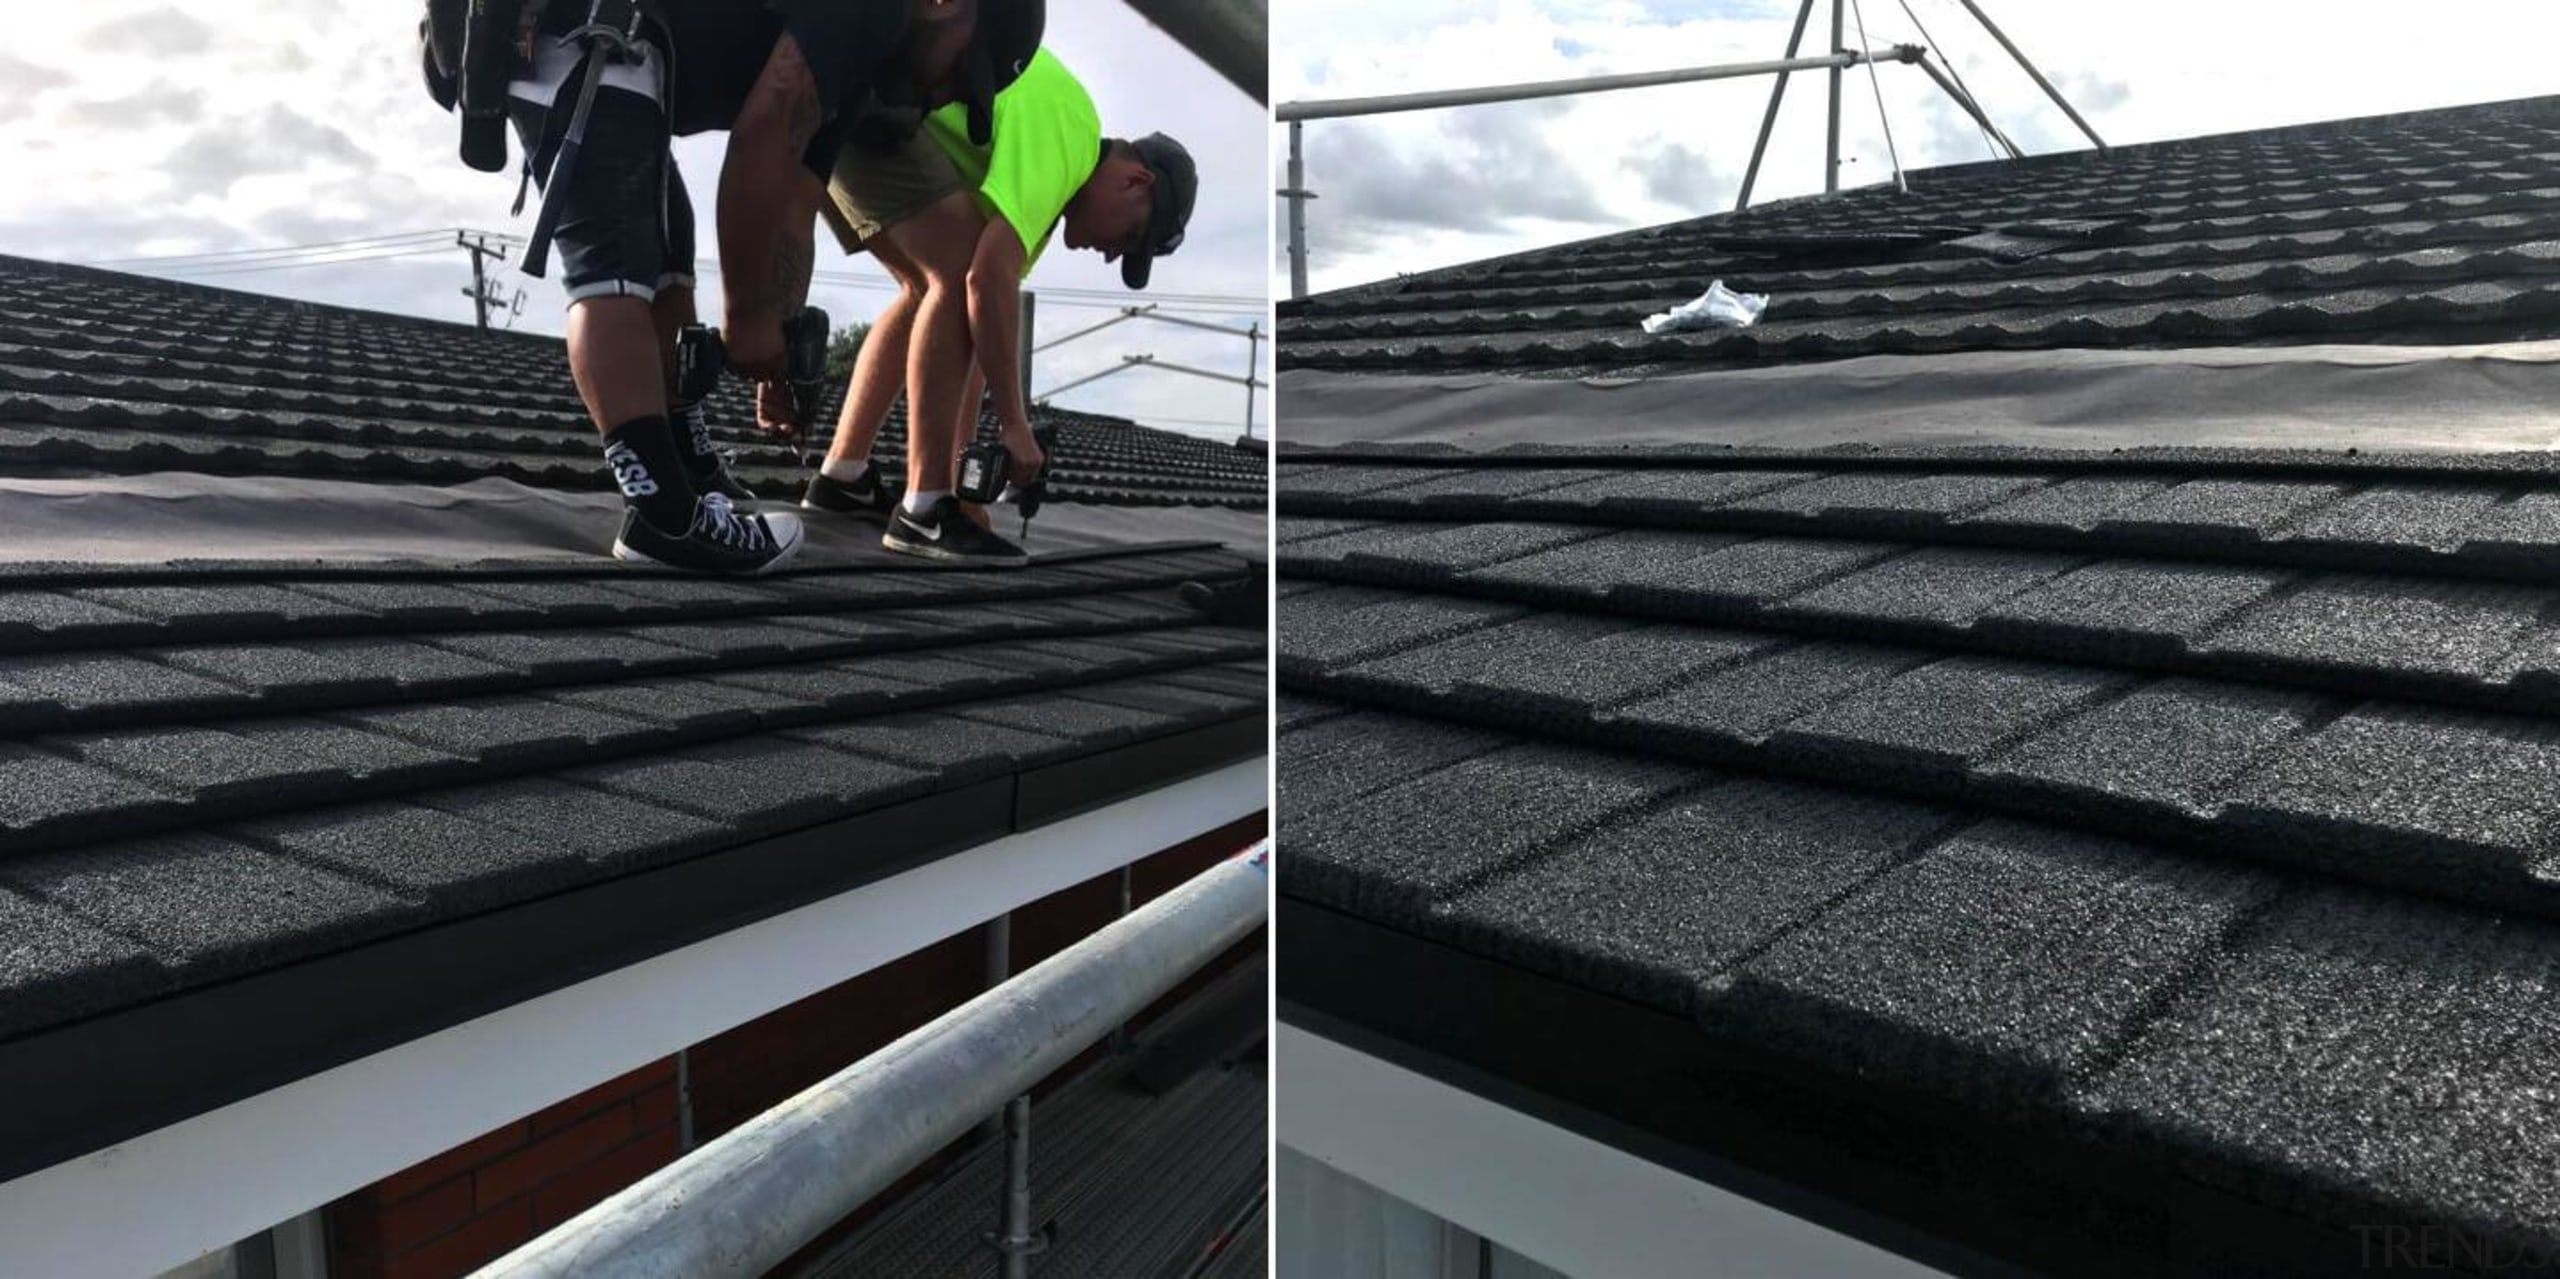 Installing a new roof - automotive tire   automotive tire, daylighting, outdoor structure, roof, tire, black